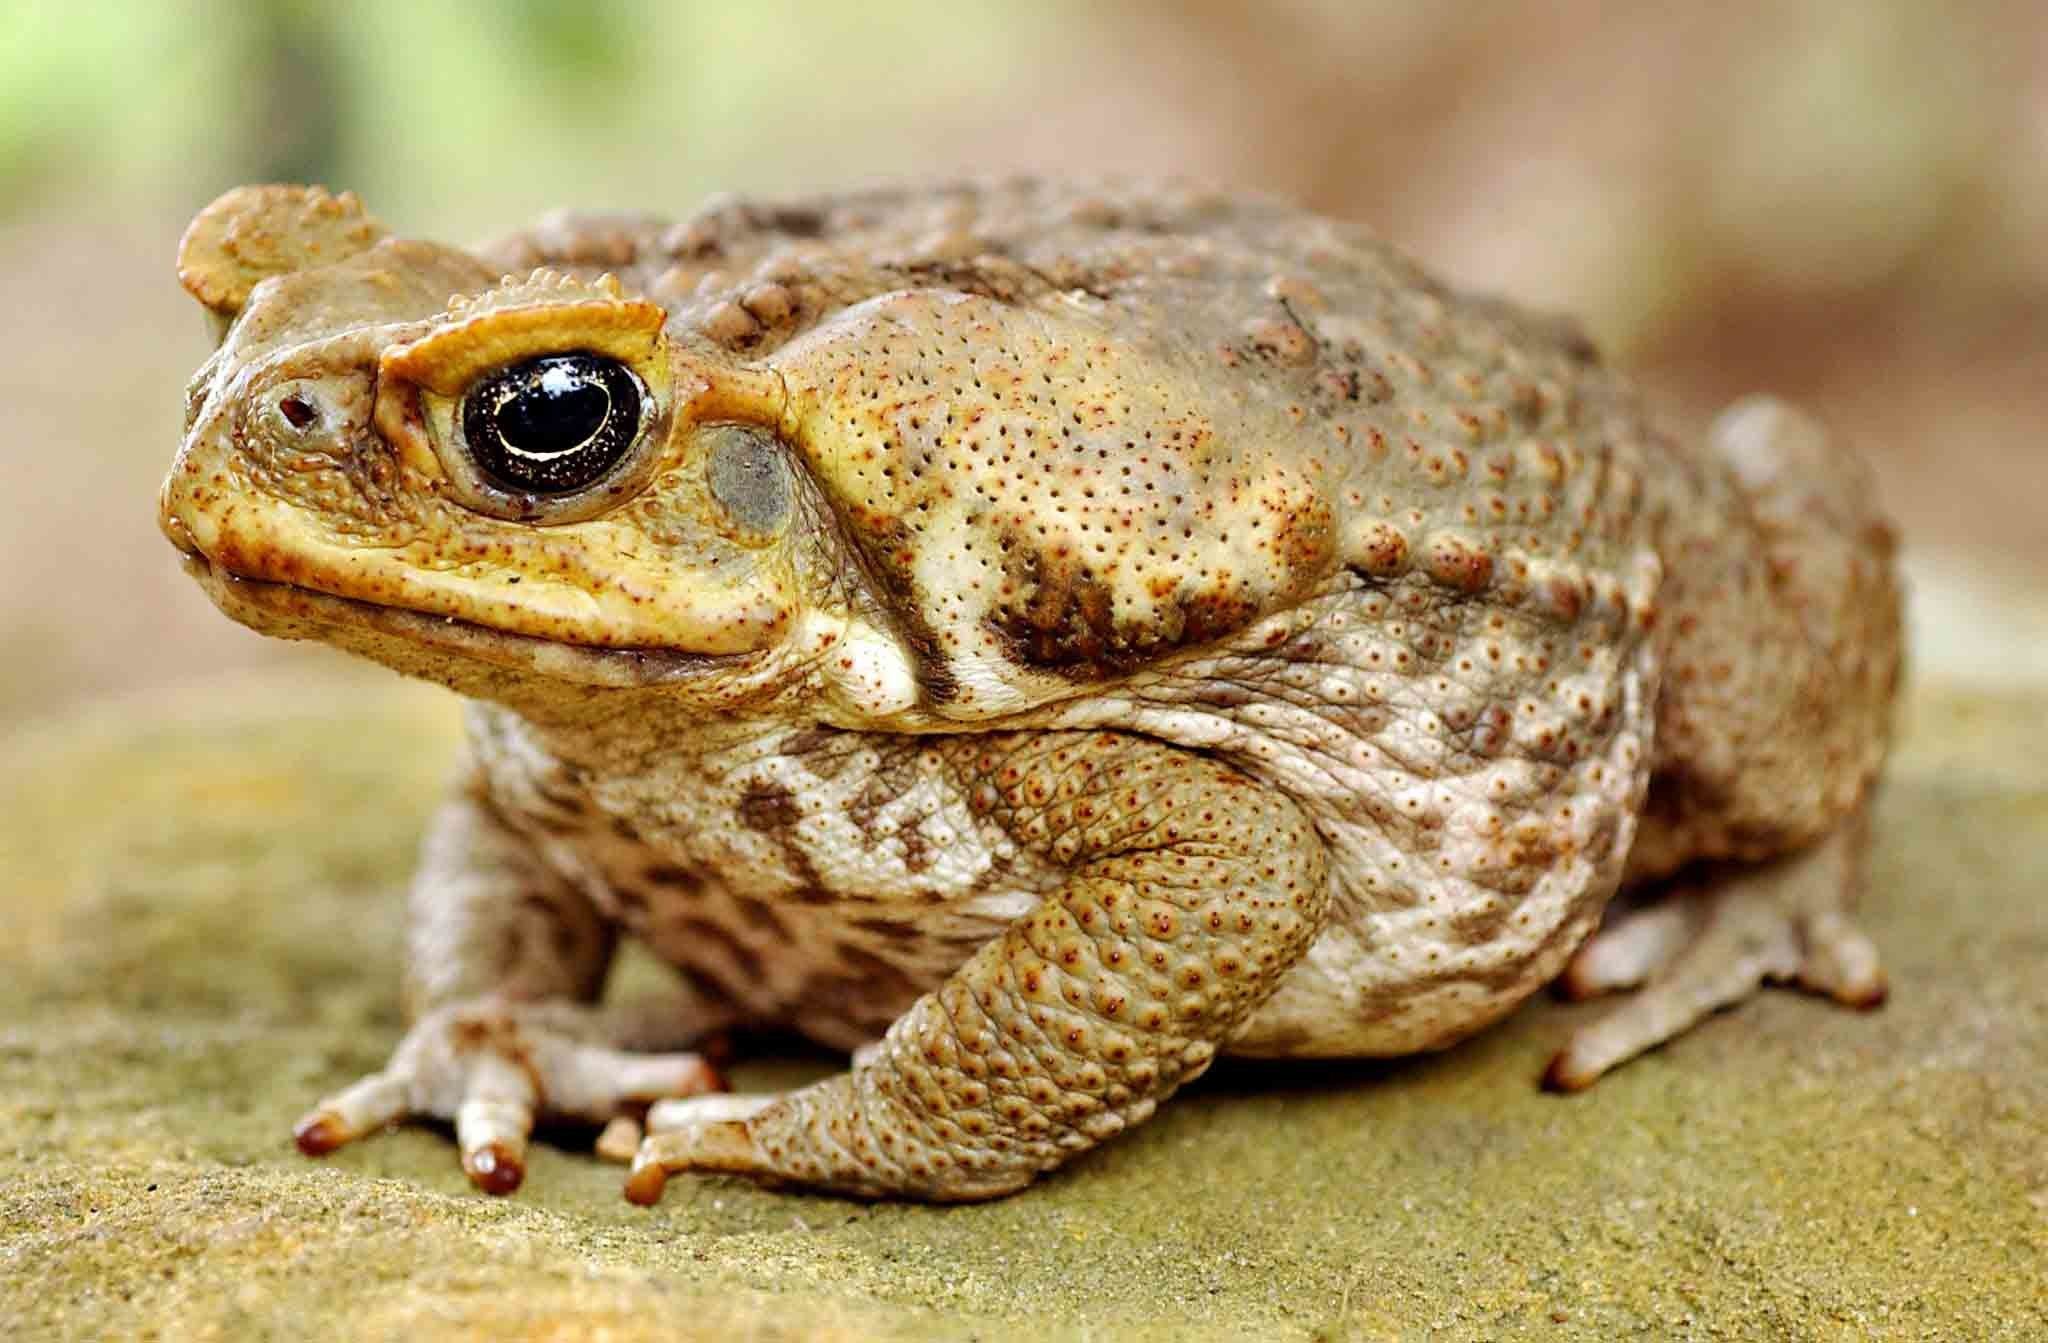 2048x1343 ... Cane toad animals wallpapers ...